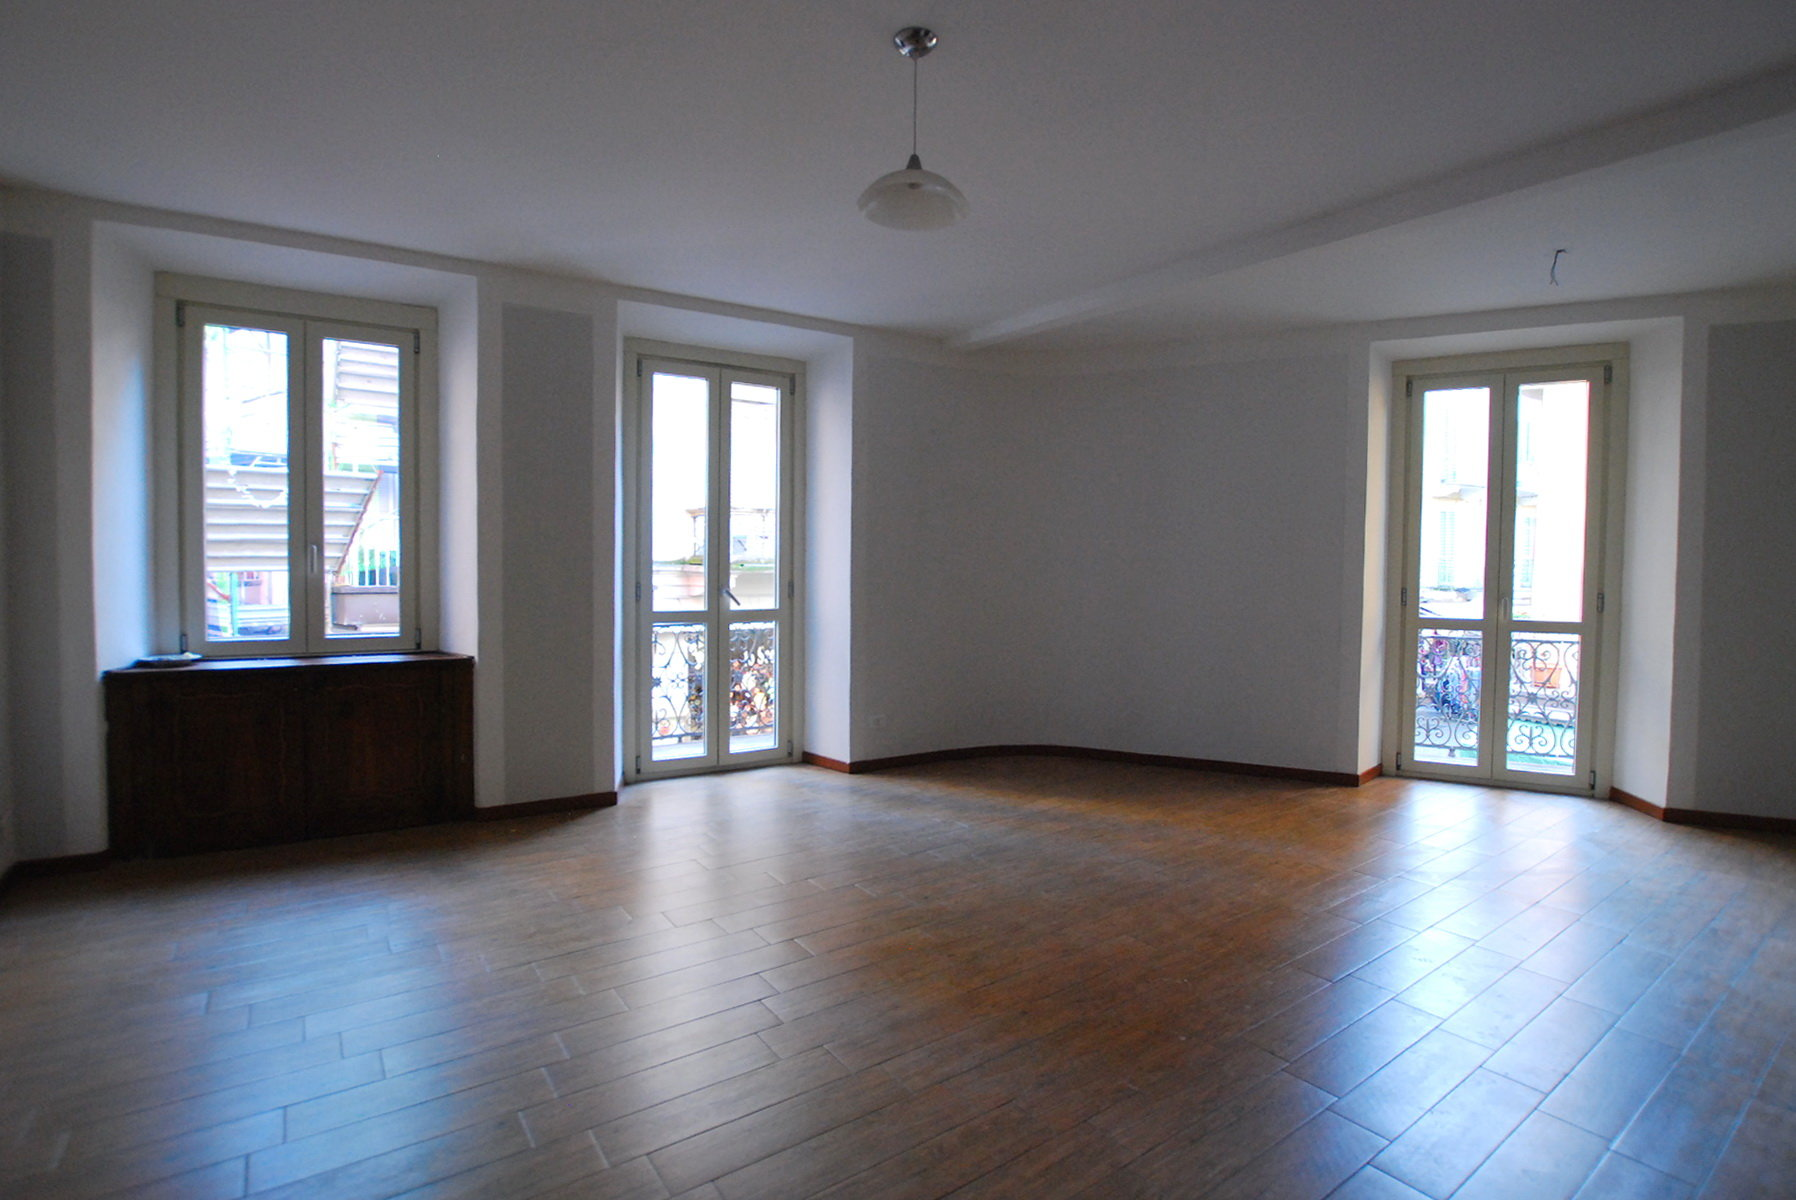 Rent apartment for sale in the centre of Stresa-living room with a view